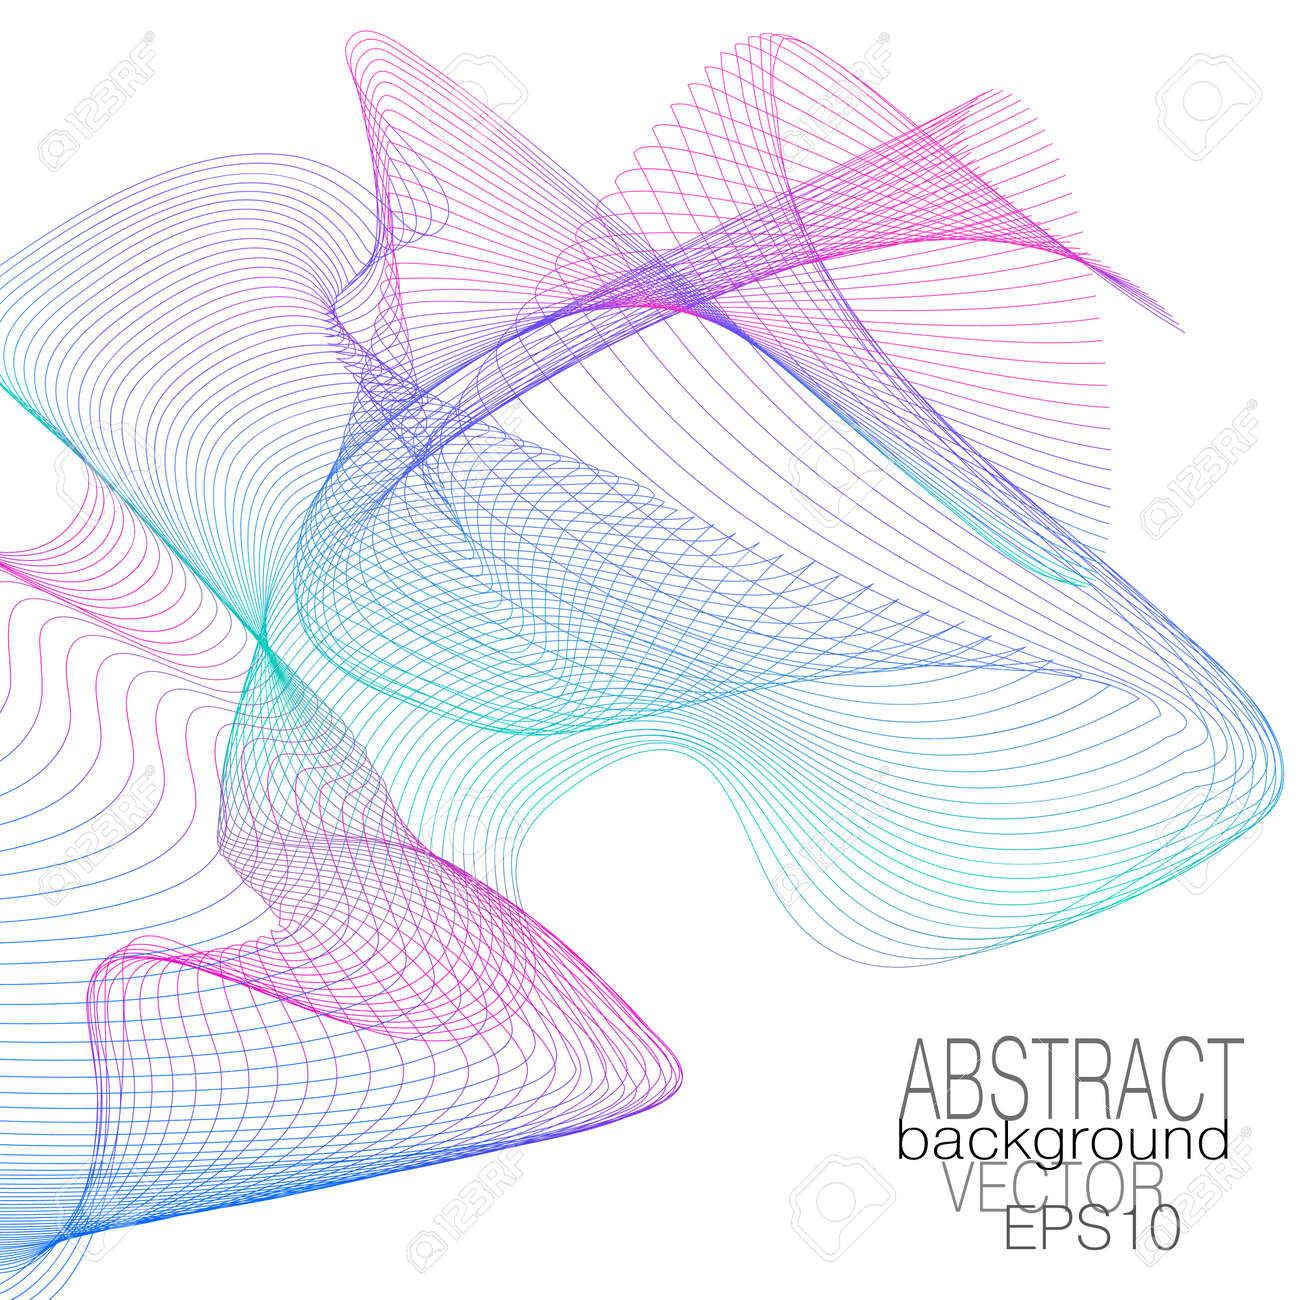 Magenta, teal, blue flying net. Dynamic veil pattern, color gradient. Thin squiggle curves. Wavy lines. Vector modern abstract line art design. Creative template for certificate, invitation, book cover, wallpaper. White background. EPS10 illustration - 163731323